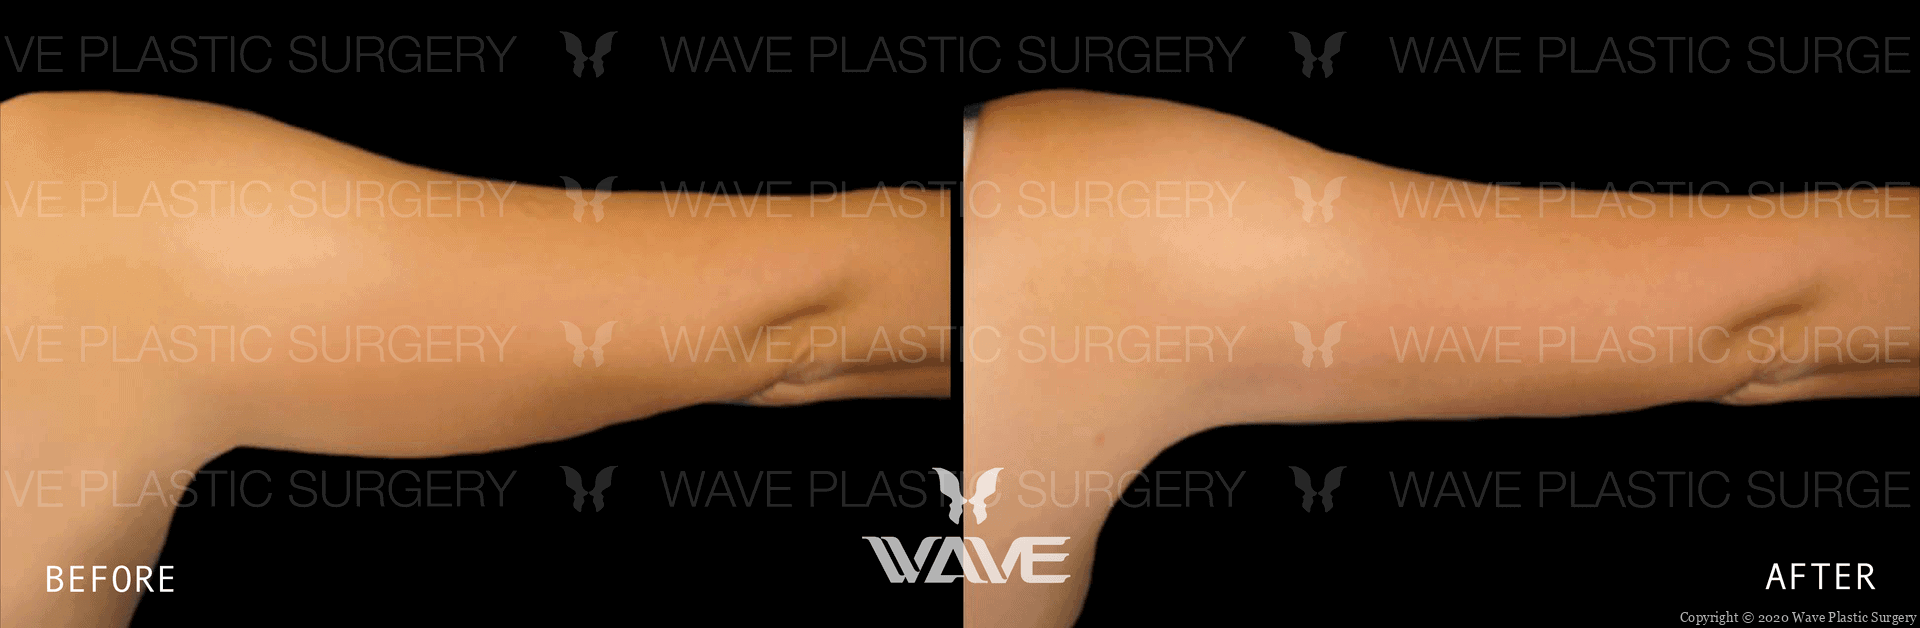 liposuction results weight loss surgery